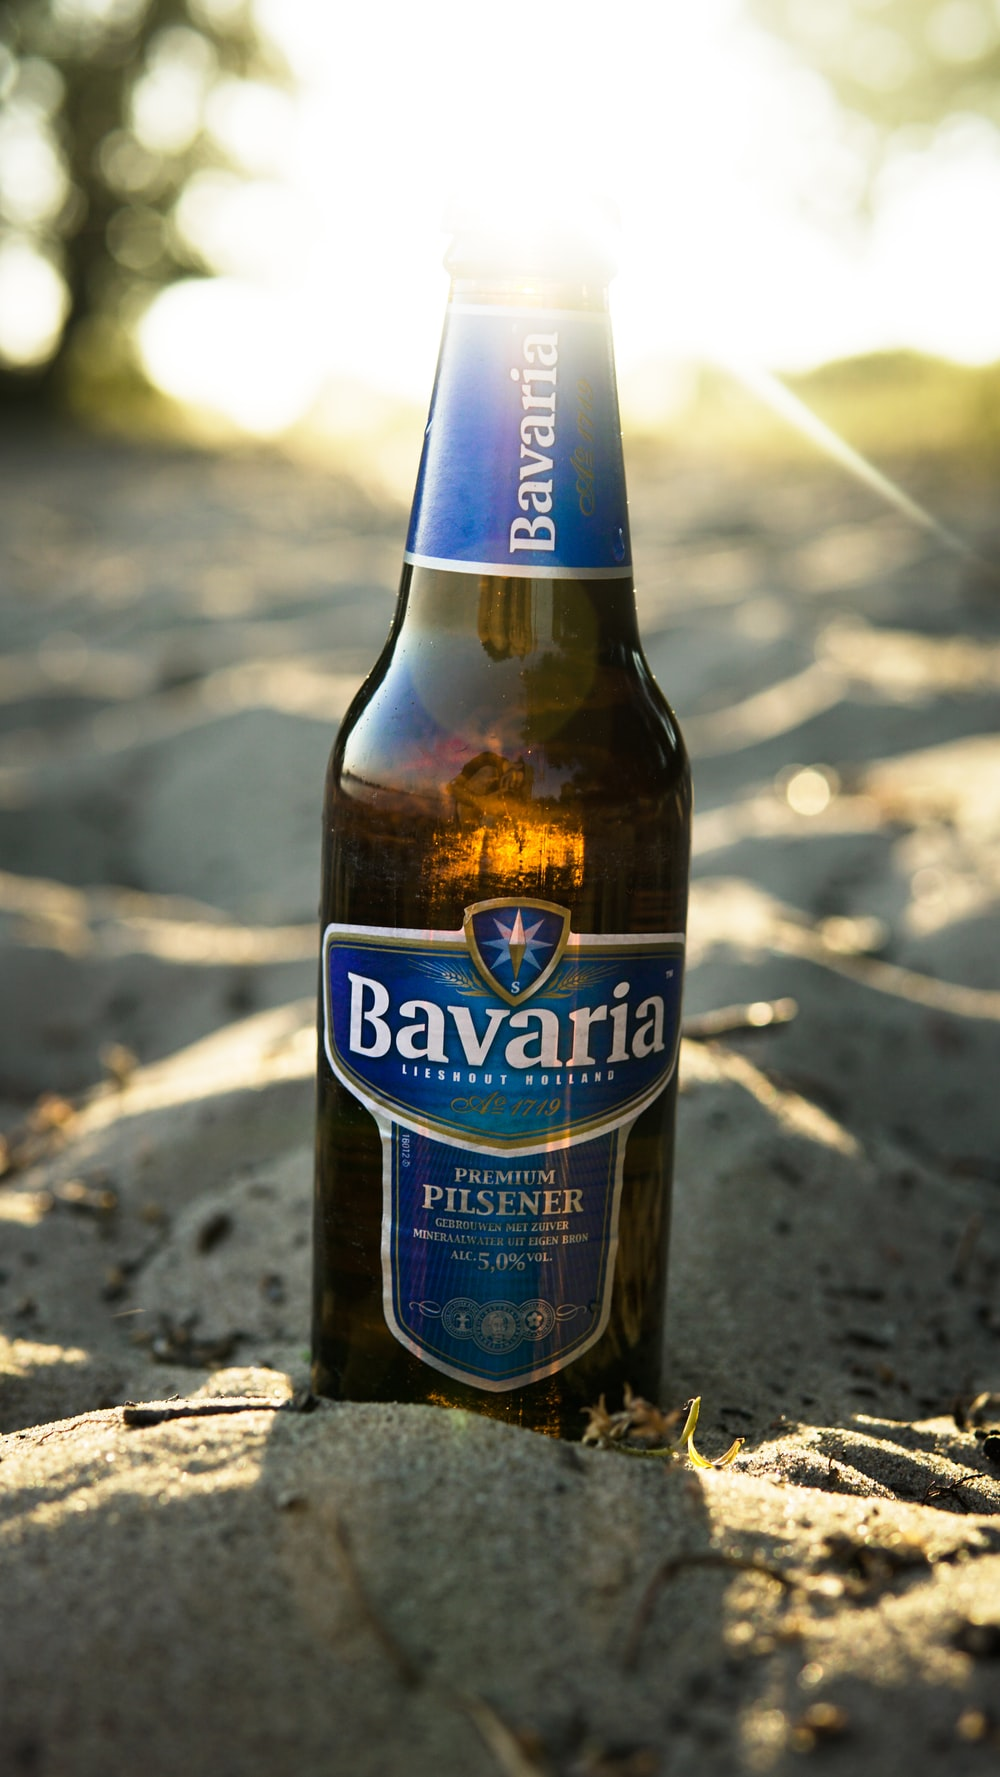 Bavaria Pilsener beer bottle on sand